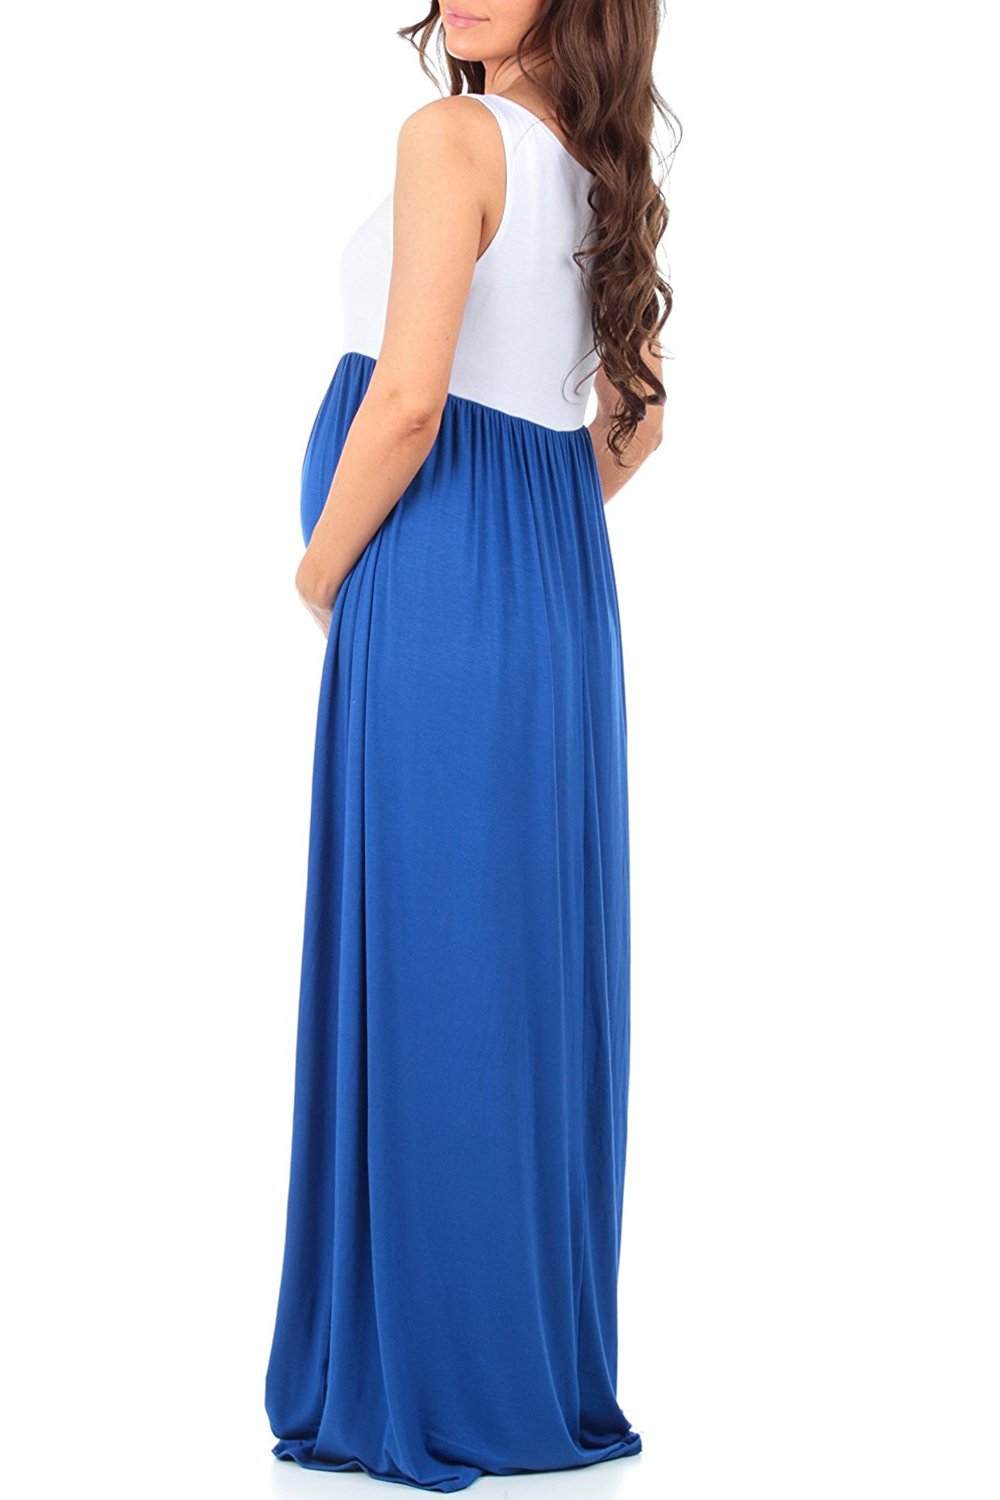 MANNEW Maternity Dress Sleeveless Maxi Dress Tank Stitching Color Block Stretch Causual Wrap Dress Ruched Gowns Blue X-Large by MANNEW (Image #4)